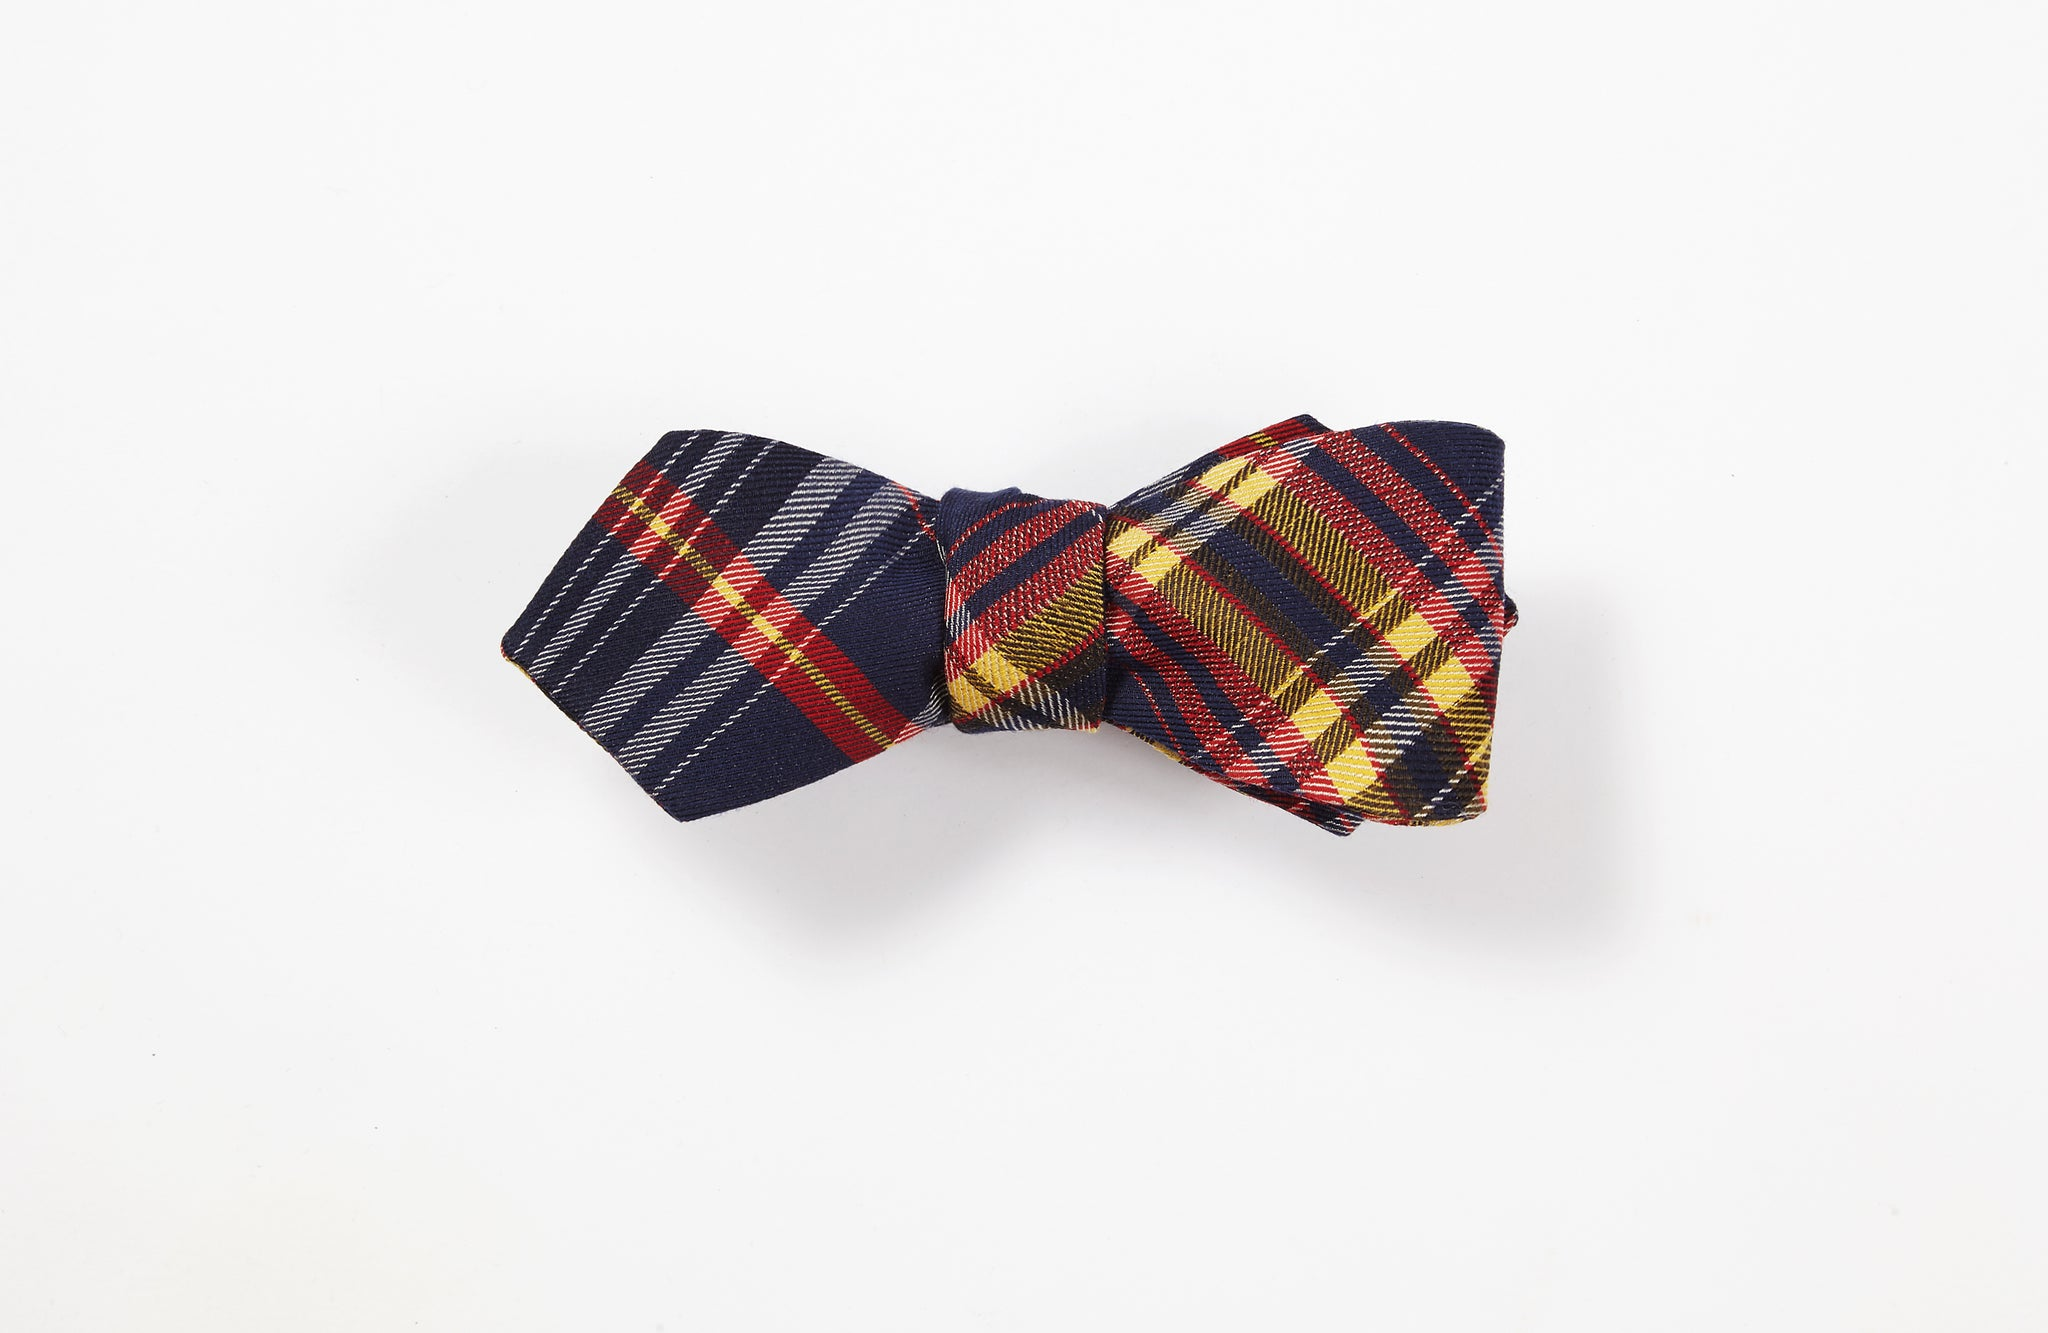 The Thrillby Bow Tie